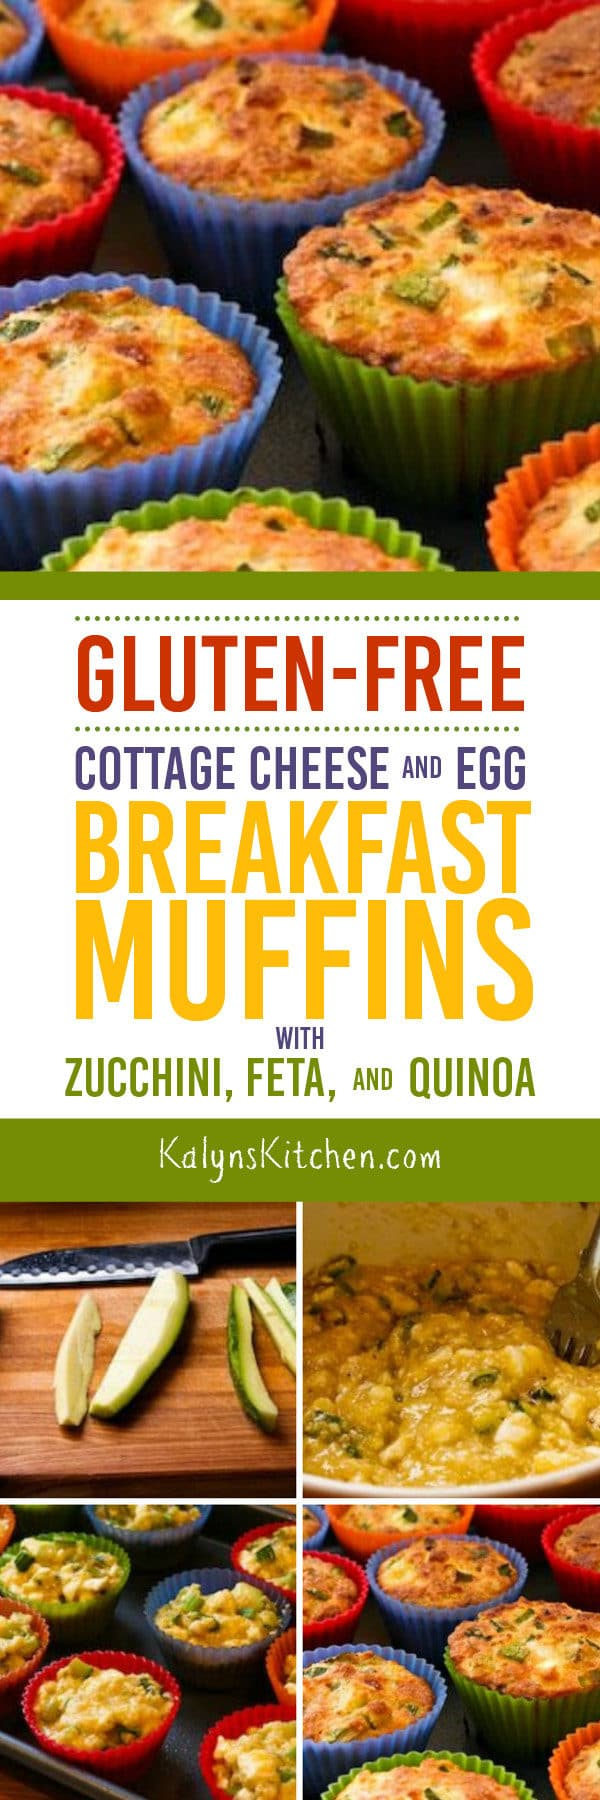 Gluten-Free Cottage Cheese and Egg Breakfast Muffins with Zucchini, Feta, and Quinoa found on KalynsKitchen.com